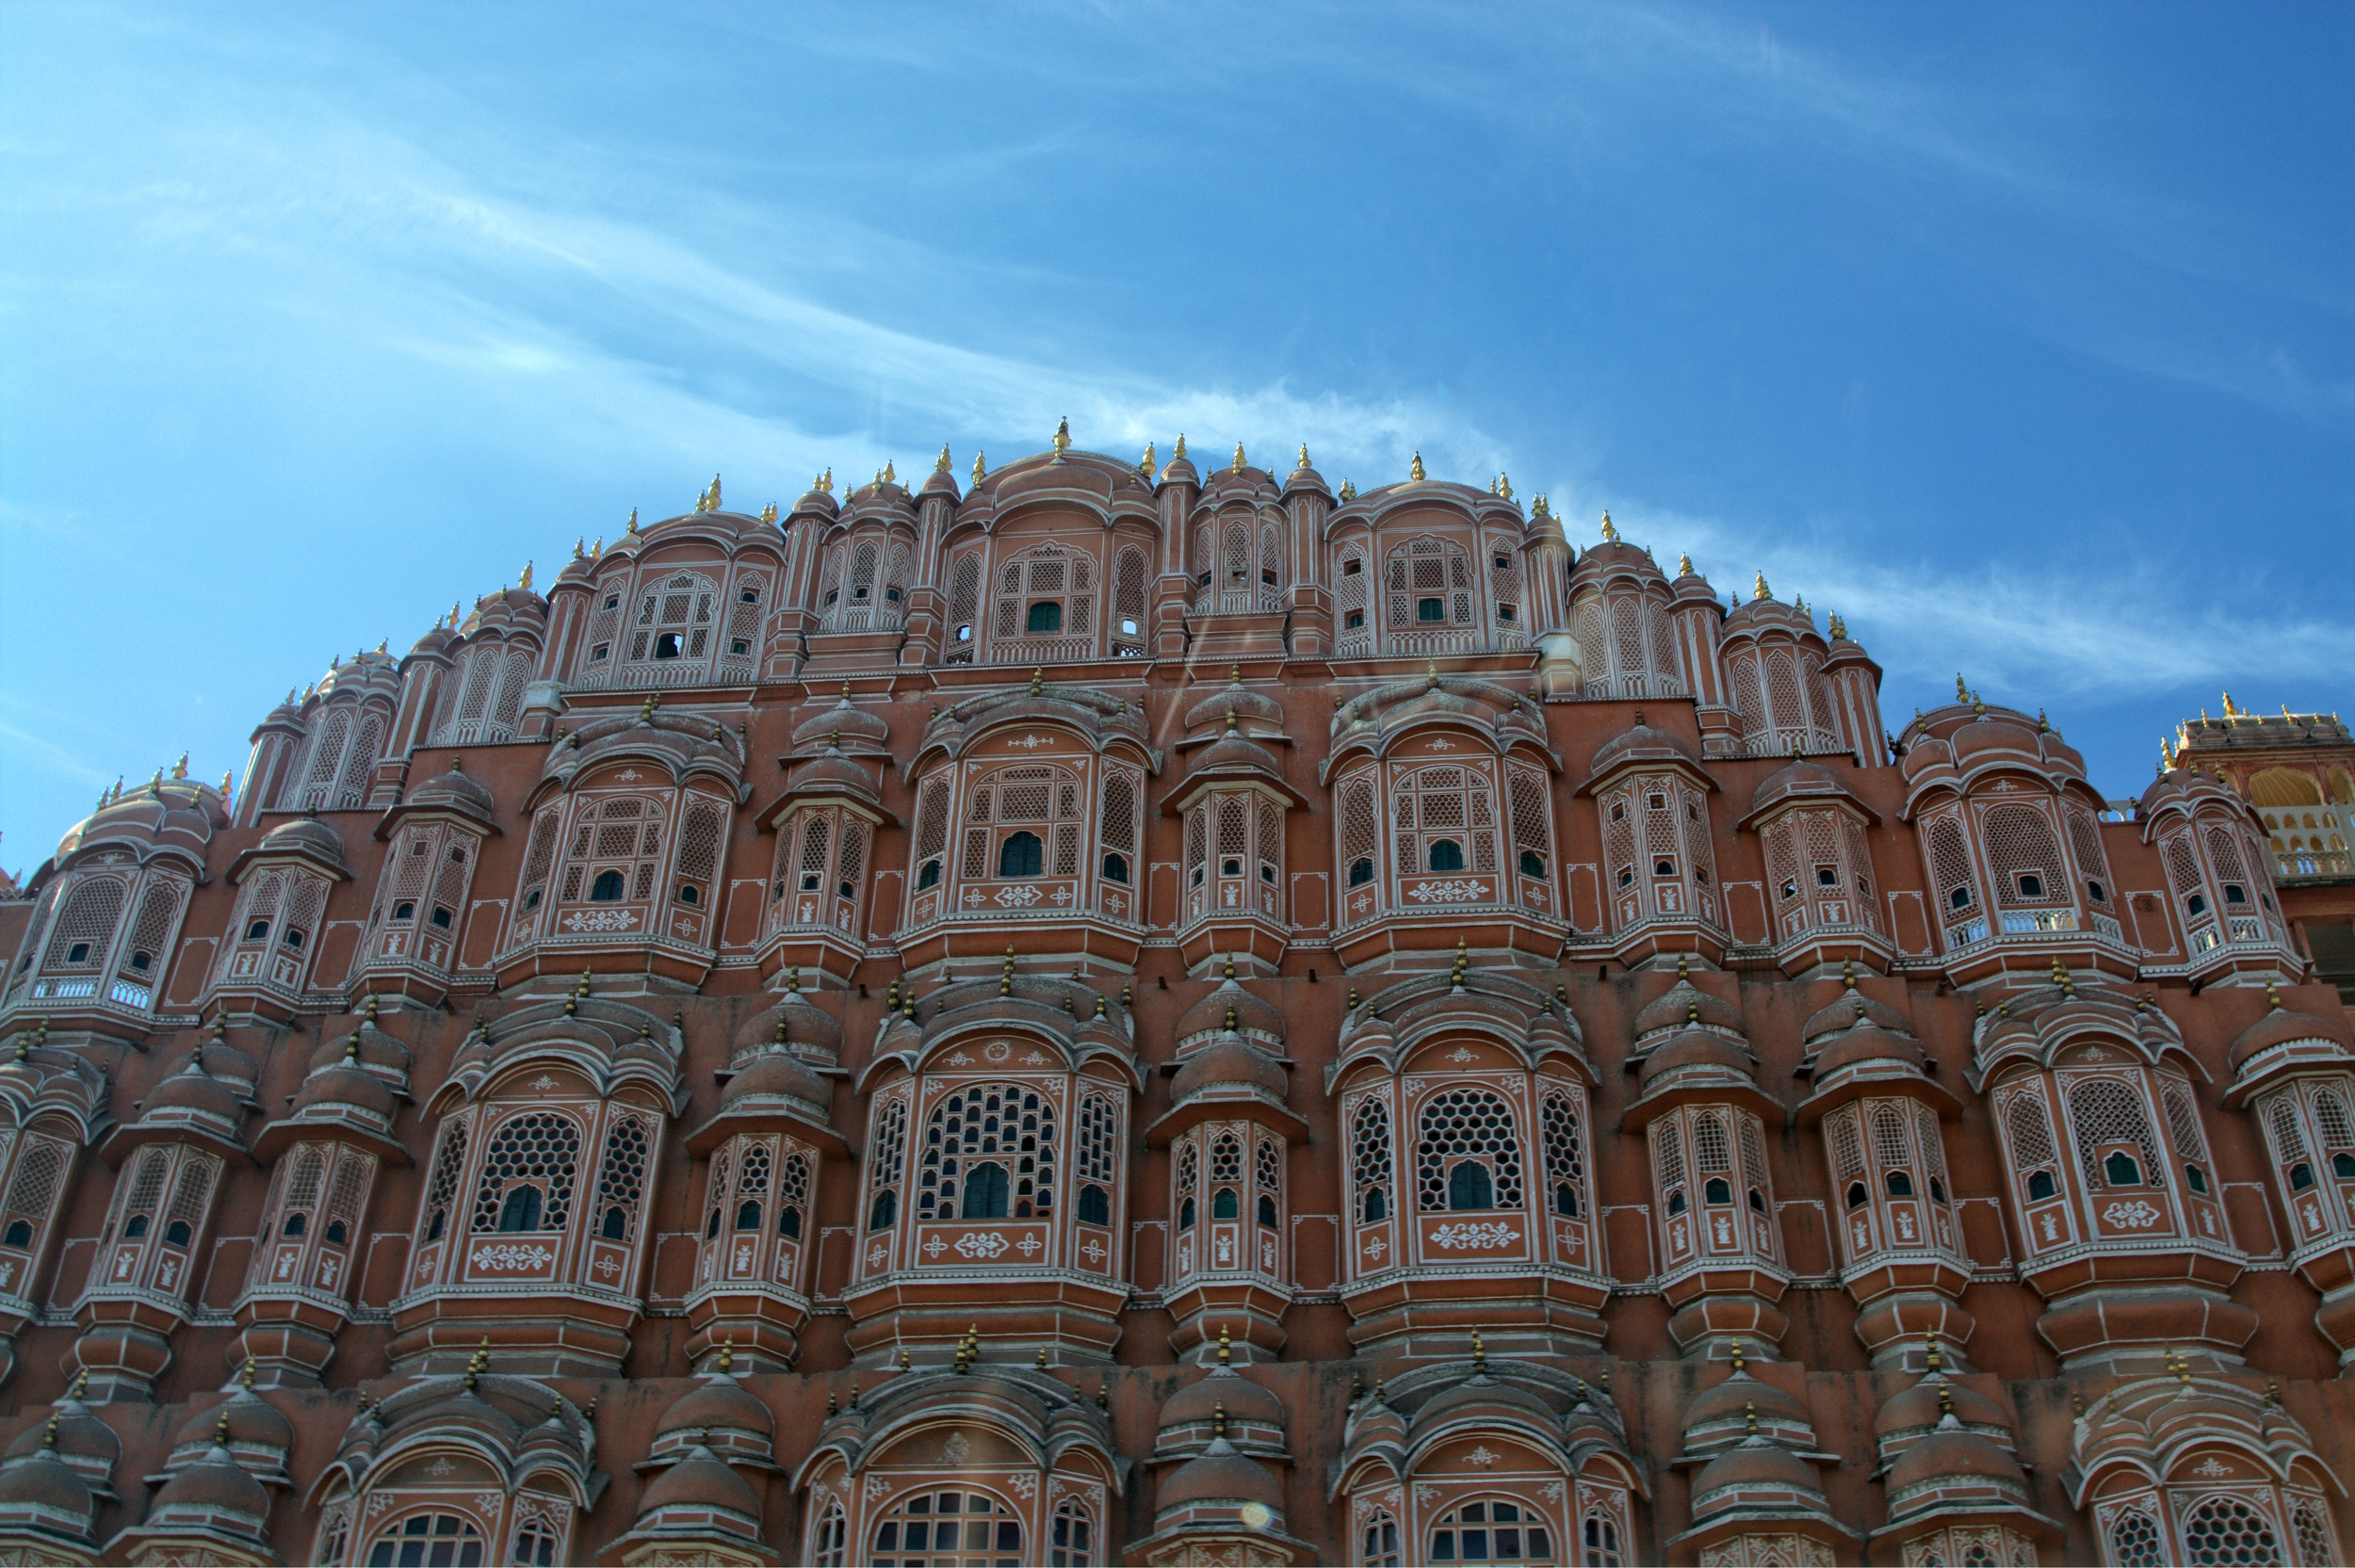 Hawa Mahal, is a palace in Jaipur, India, it was essentially a high screen wall built so the women of the royal household could observe street festivals while unseen from the outside.